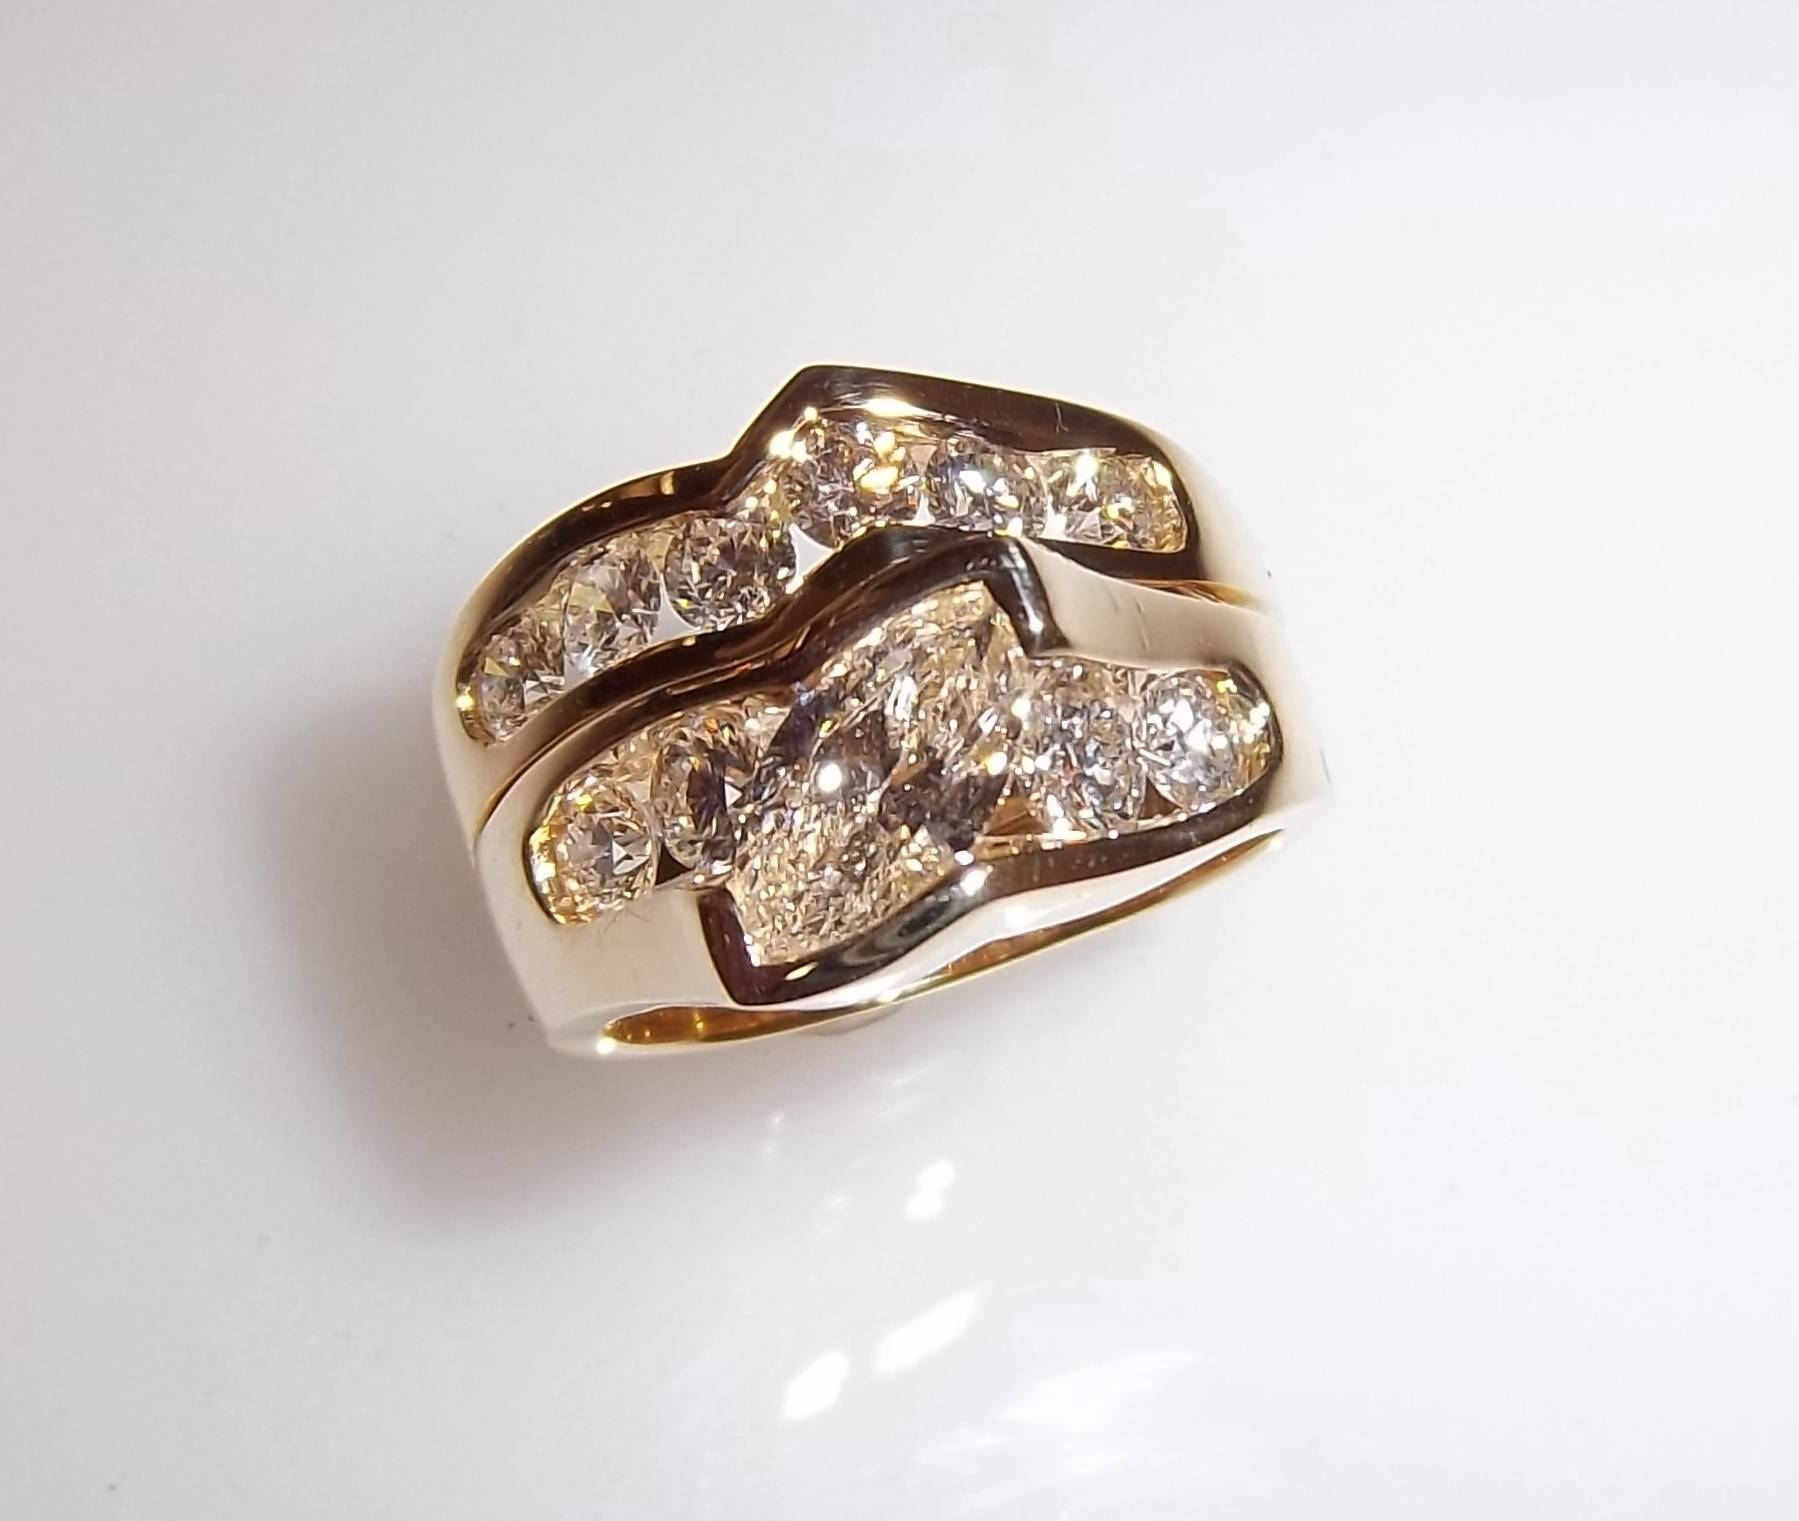 Wedding Anniversary Rings For Her | Wedding Ideas Within Most Popular 10 Year Wedding Anniversary Rings (View 10 of 15)